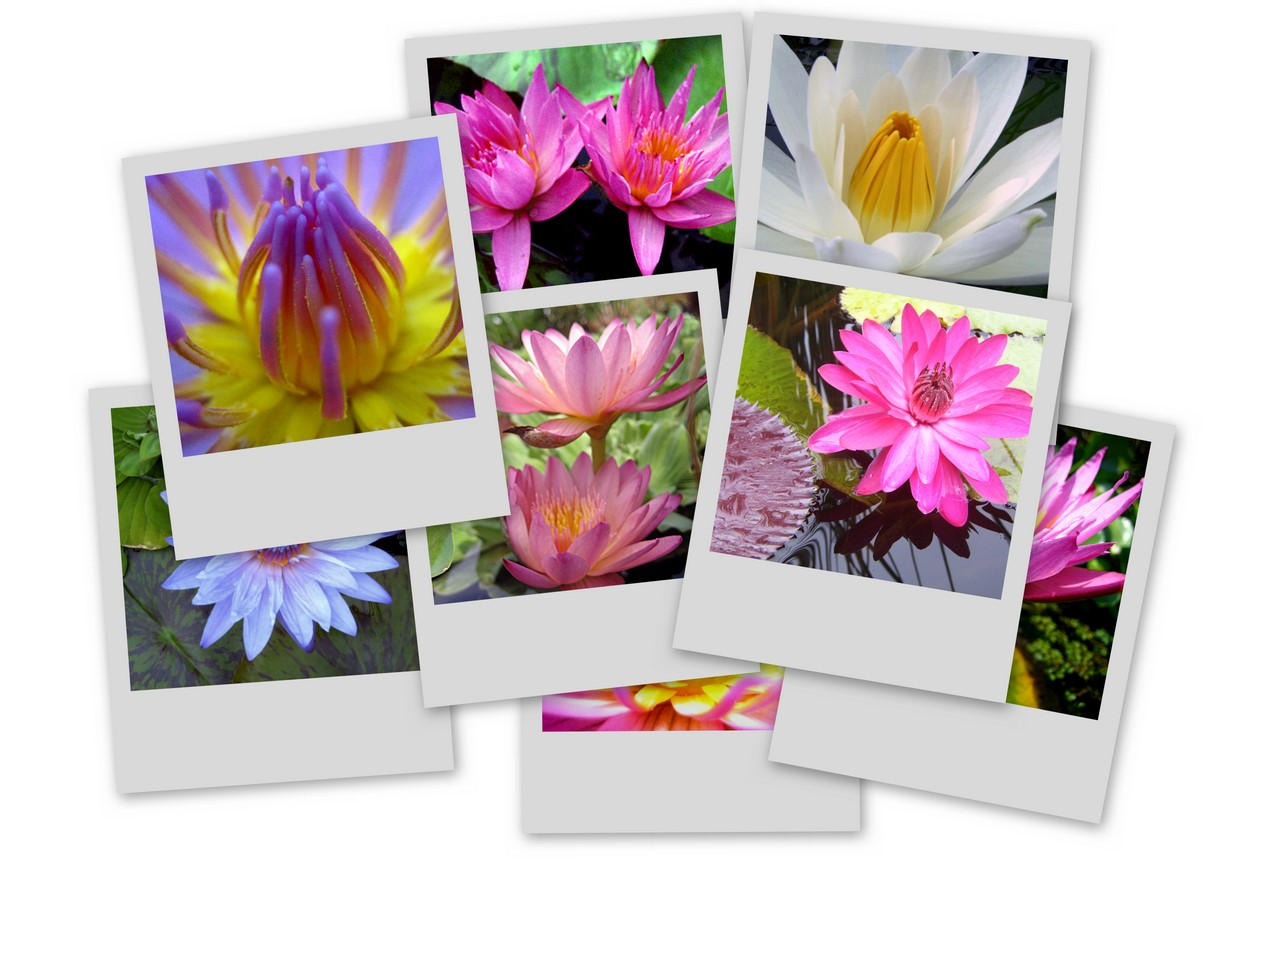 Tropical water lily photos